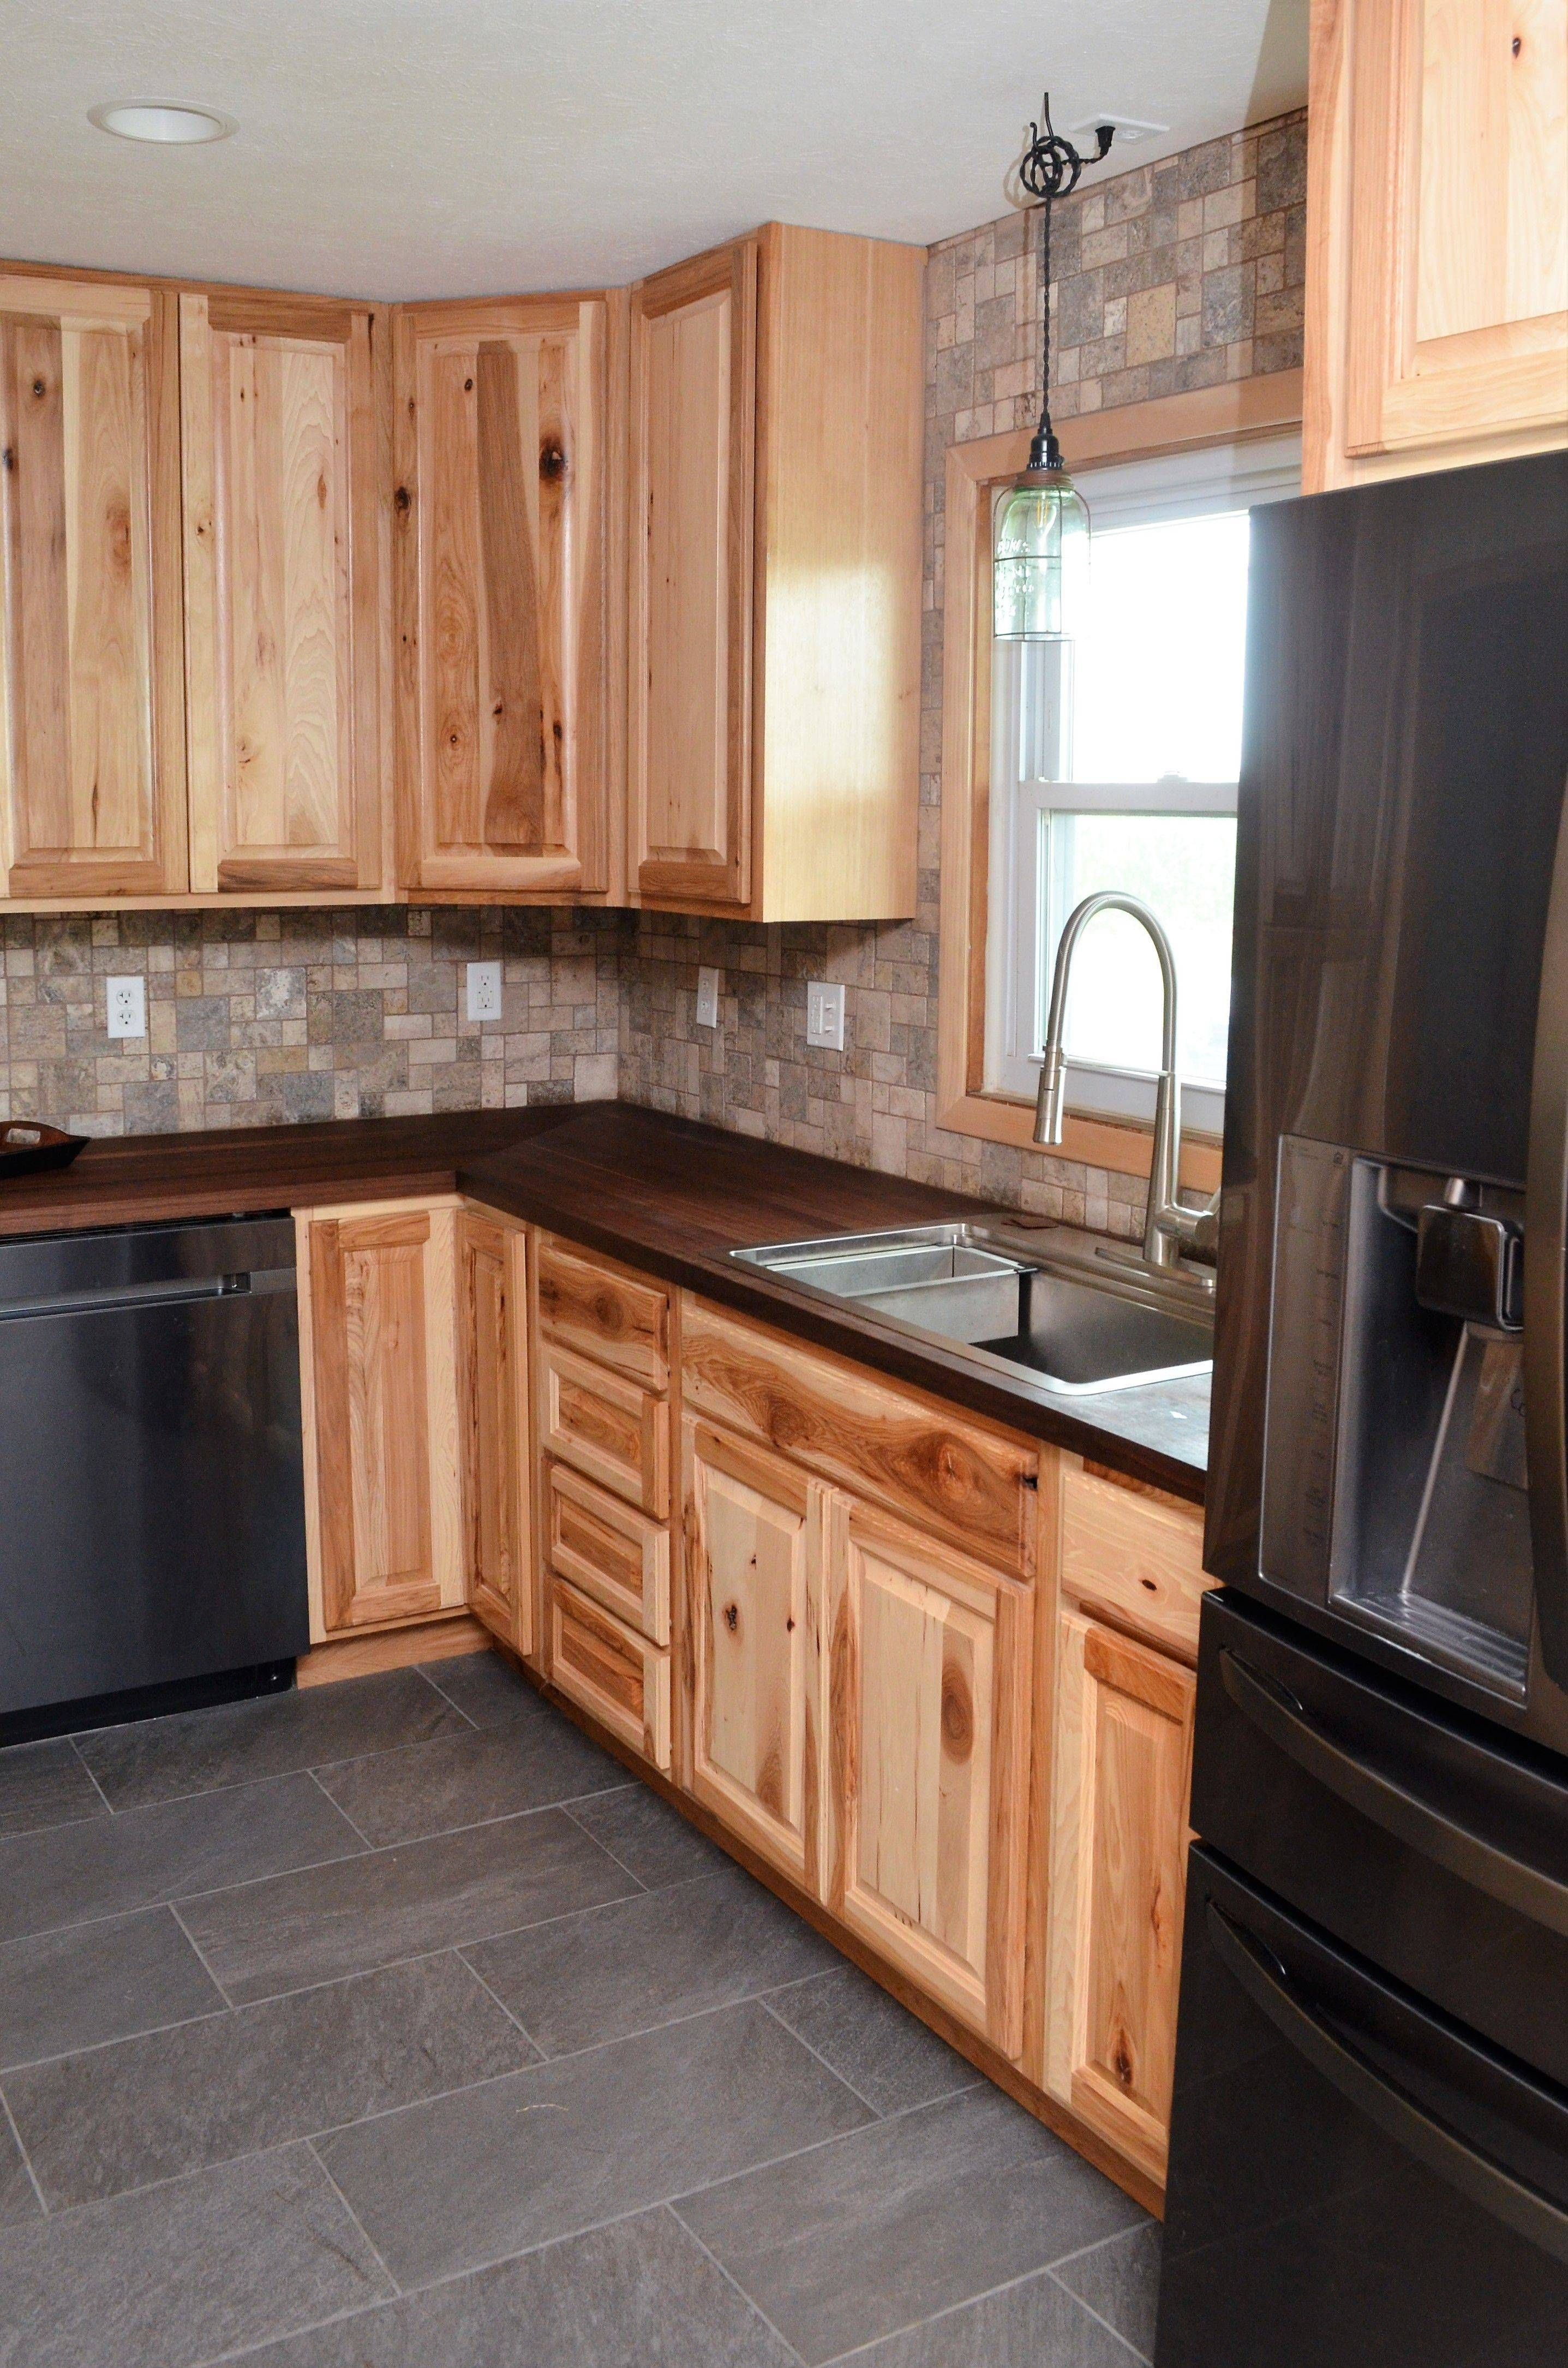 Knotty Pine Cabinets Buildingdesign Homedesign Architecture Home Design Housede Rustic Kitchen Cabinets Beautiful Kitchen Cabinets Pine Kitchen Cabinets